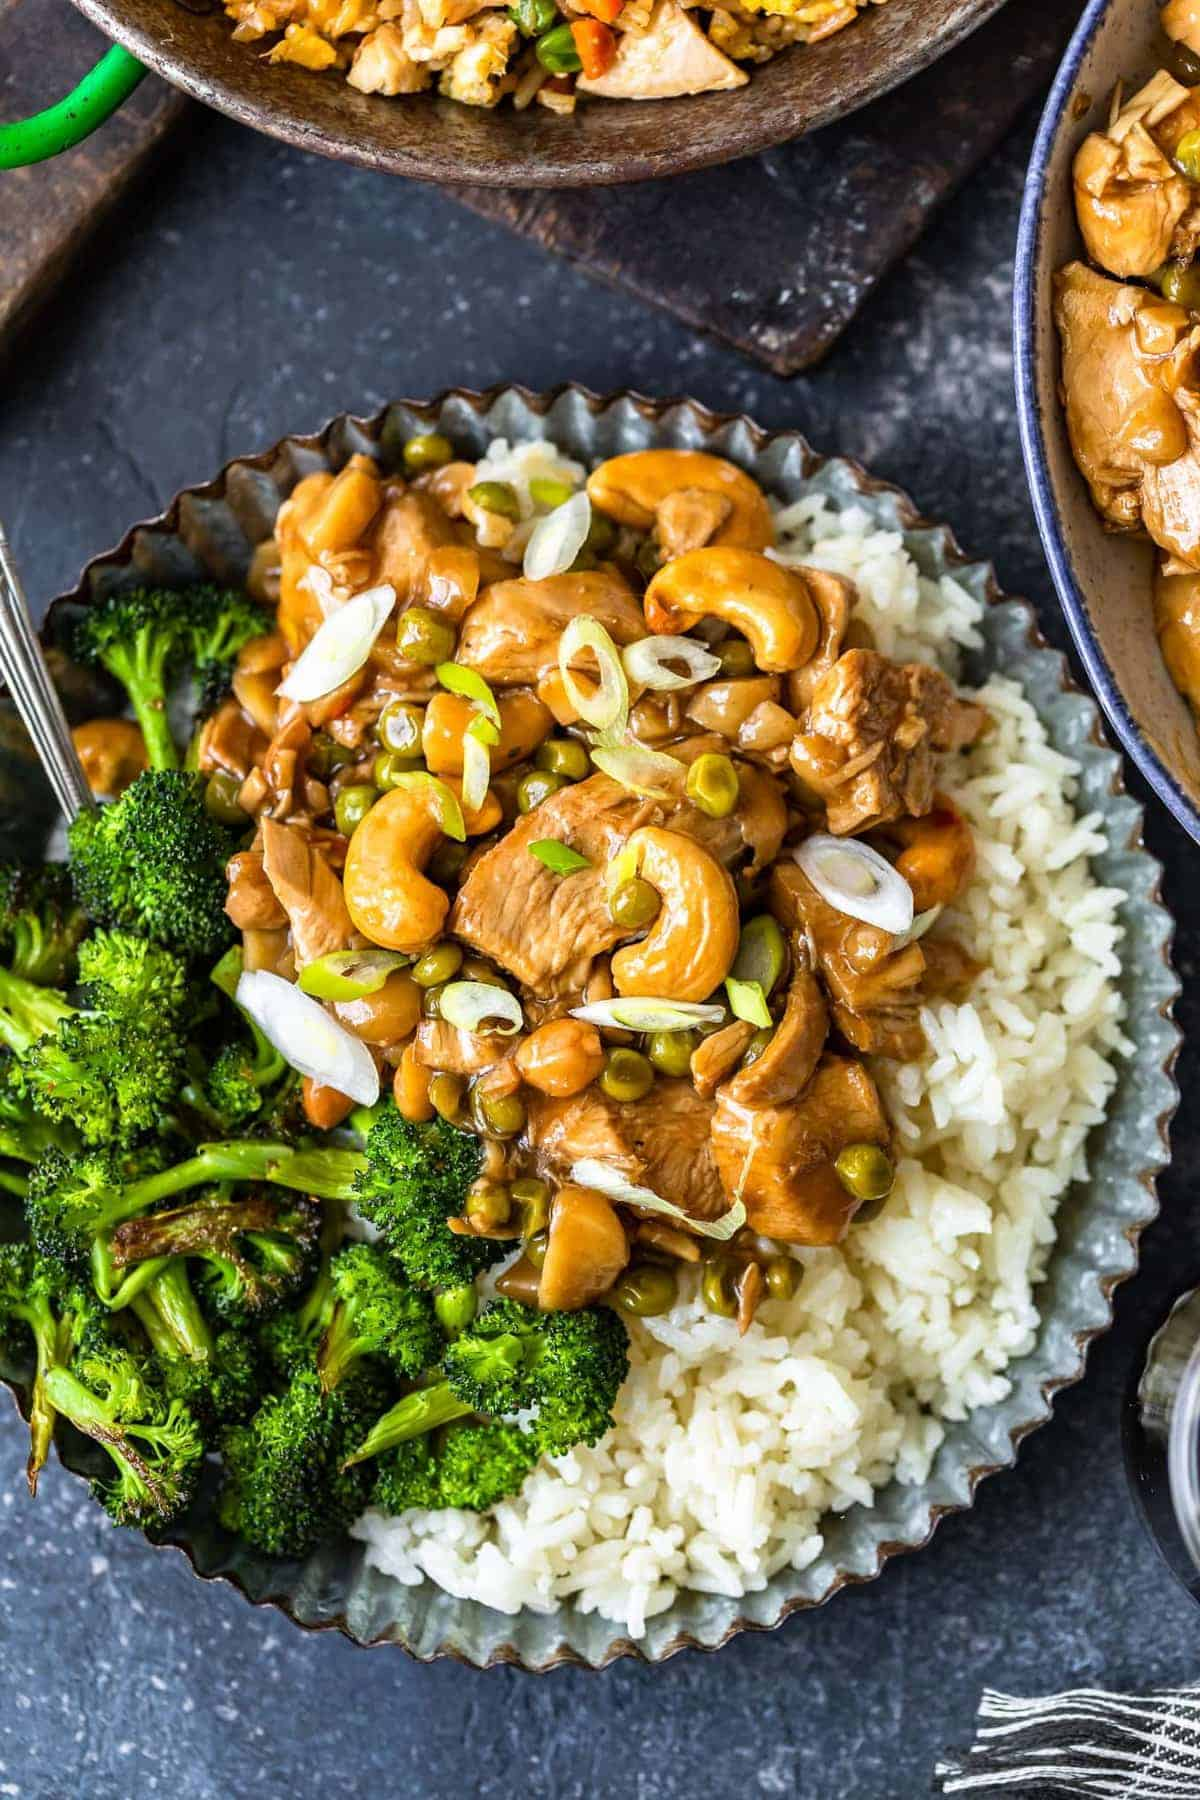 Homemade cashew chicken served with rice and broccoli